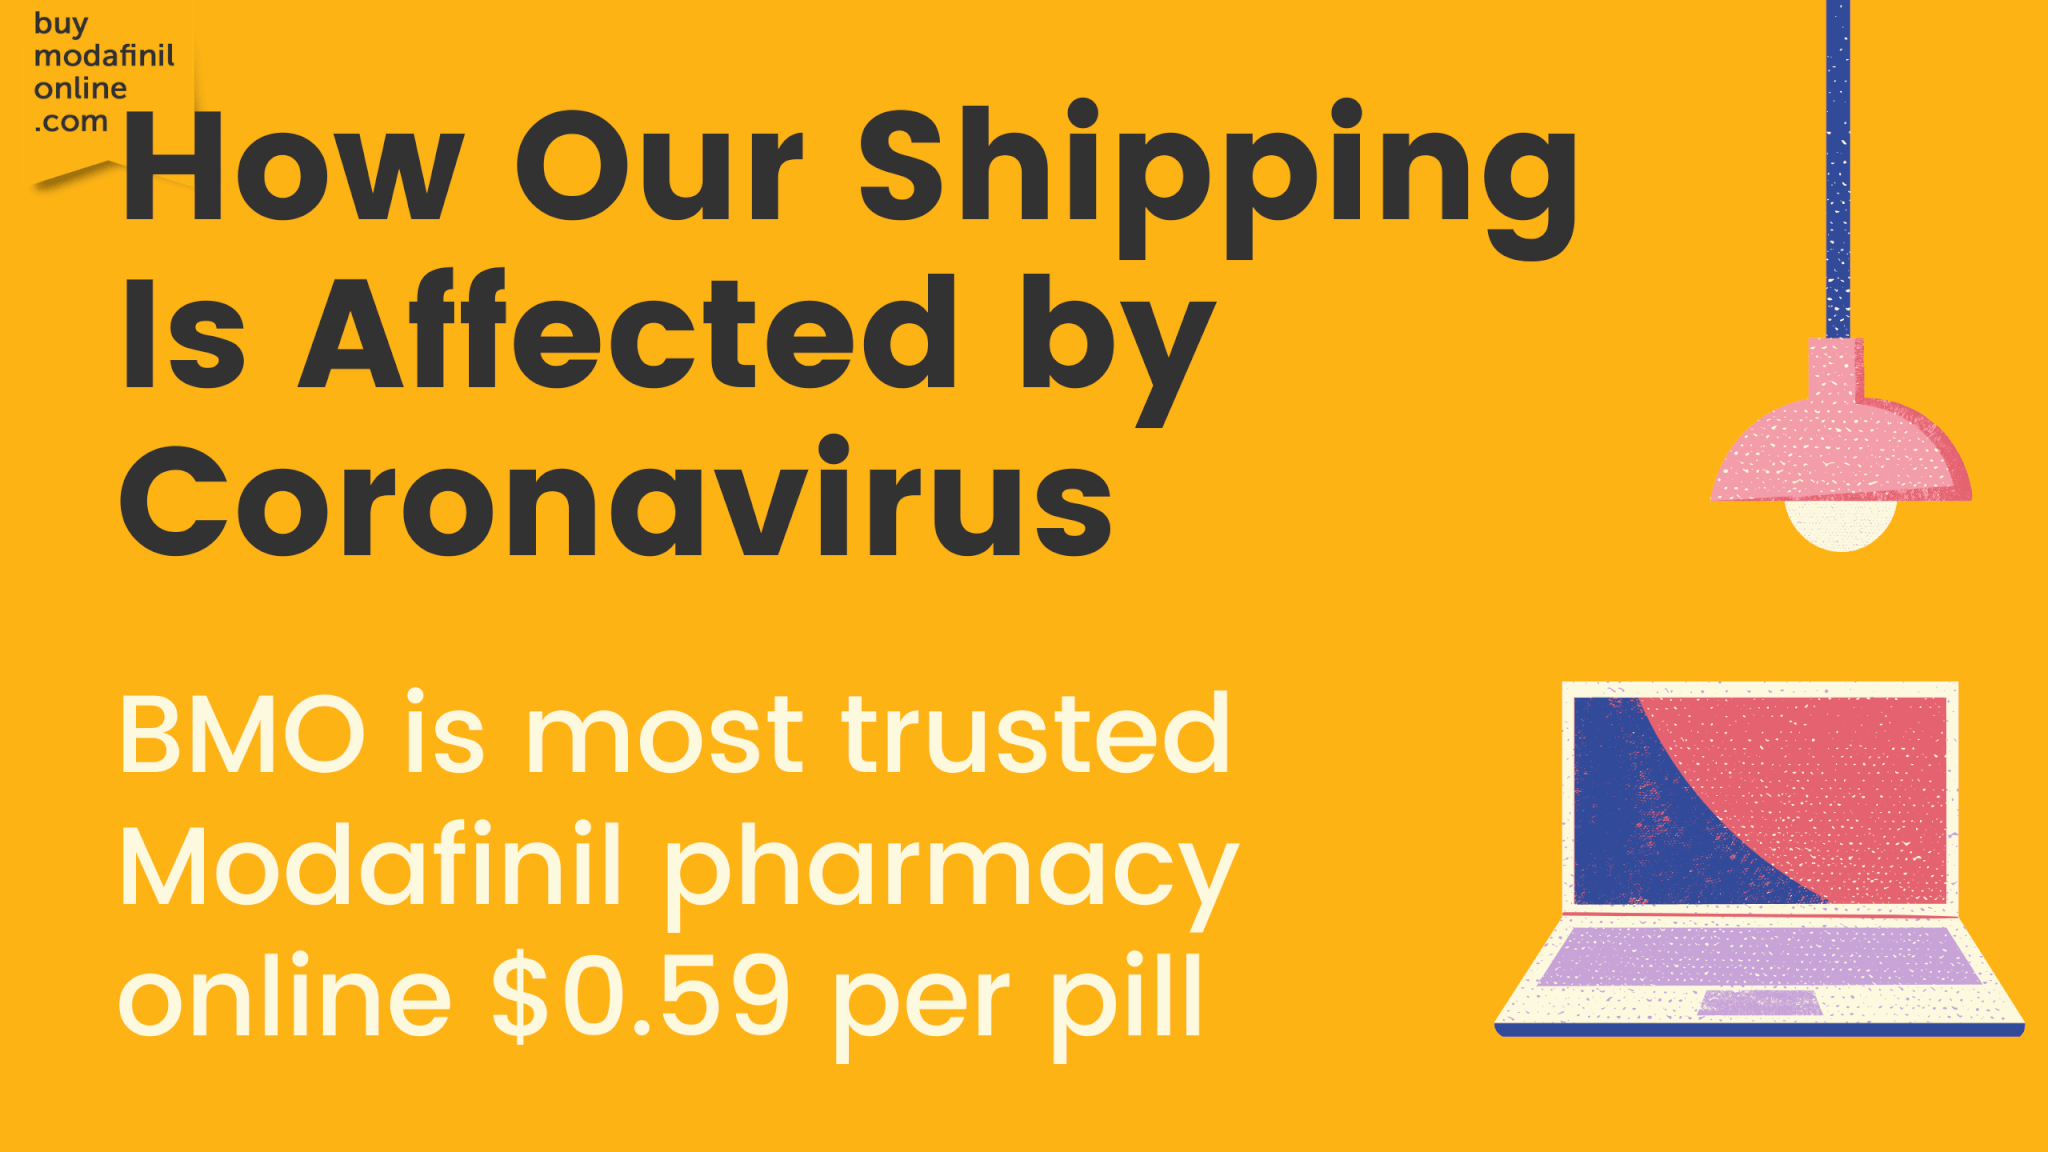 How Our Shipping Is Affected by Coronavirus